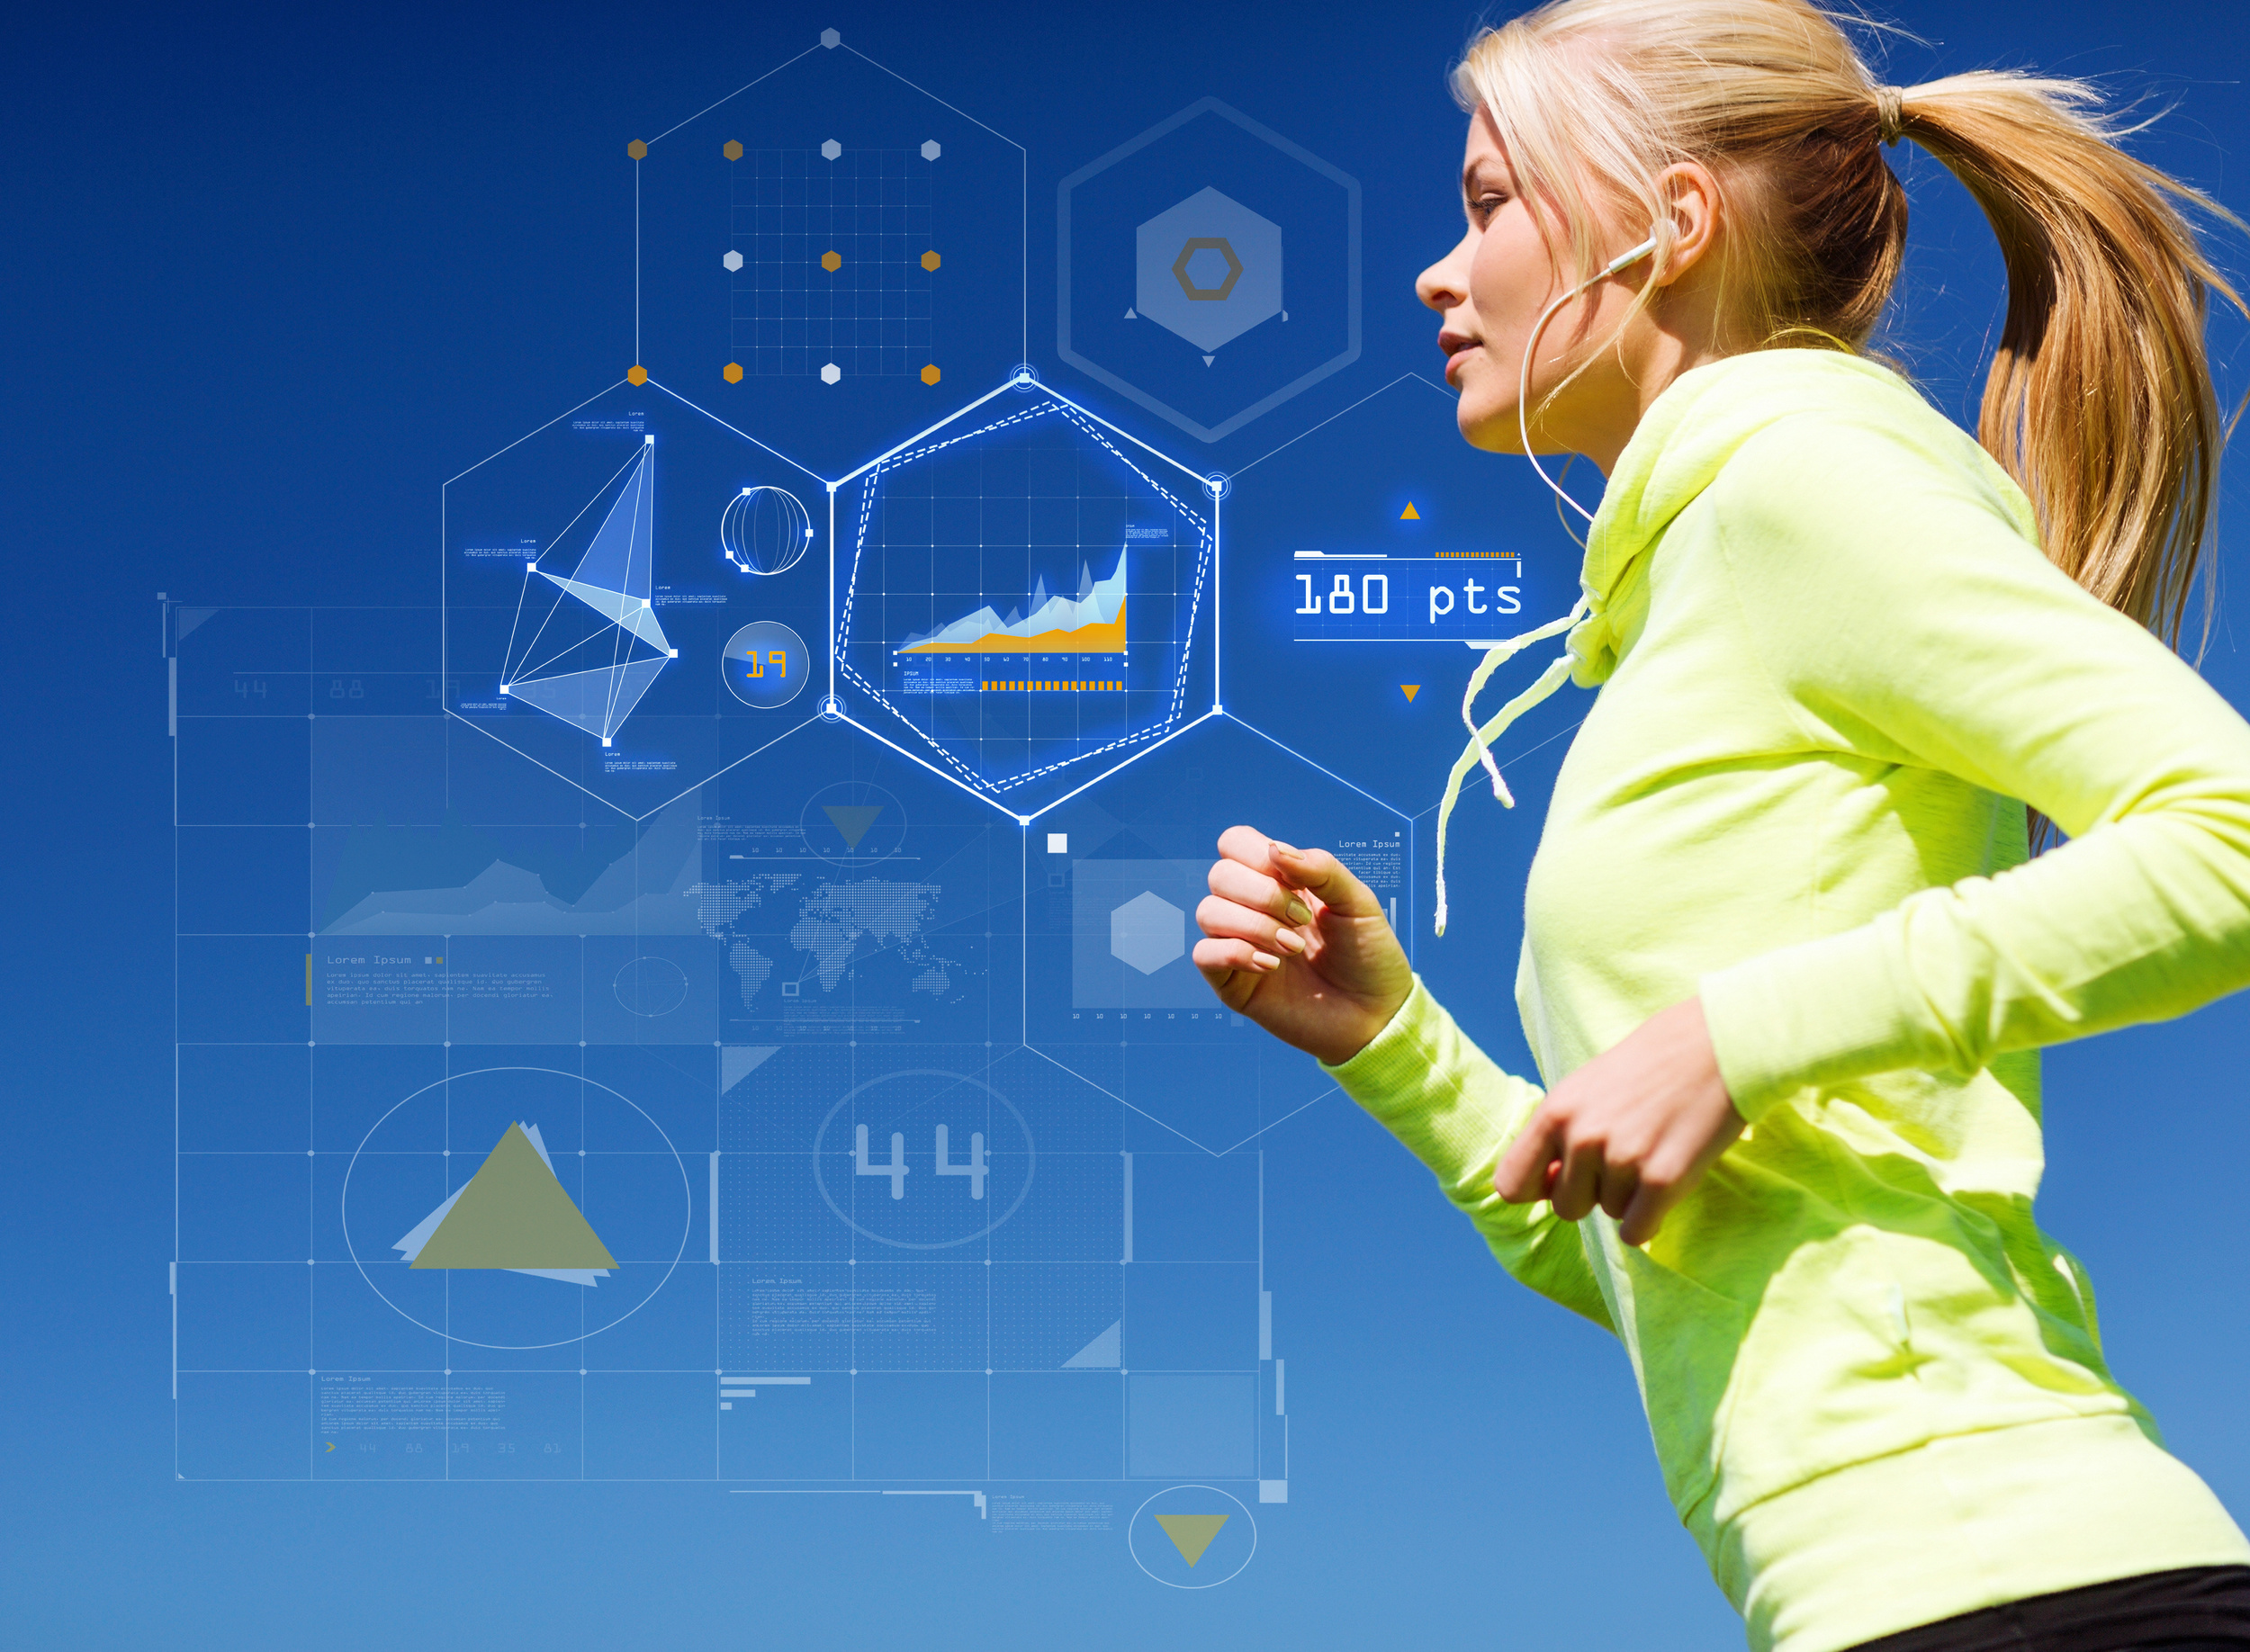 What data do you need most to help you stick with your workouts?